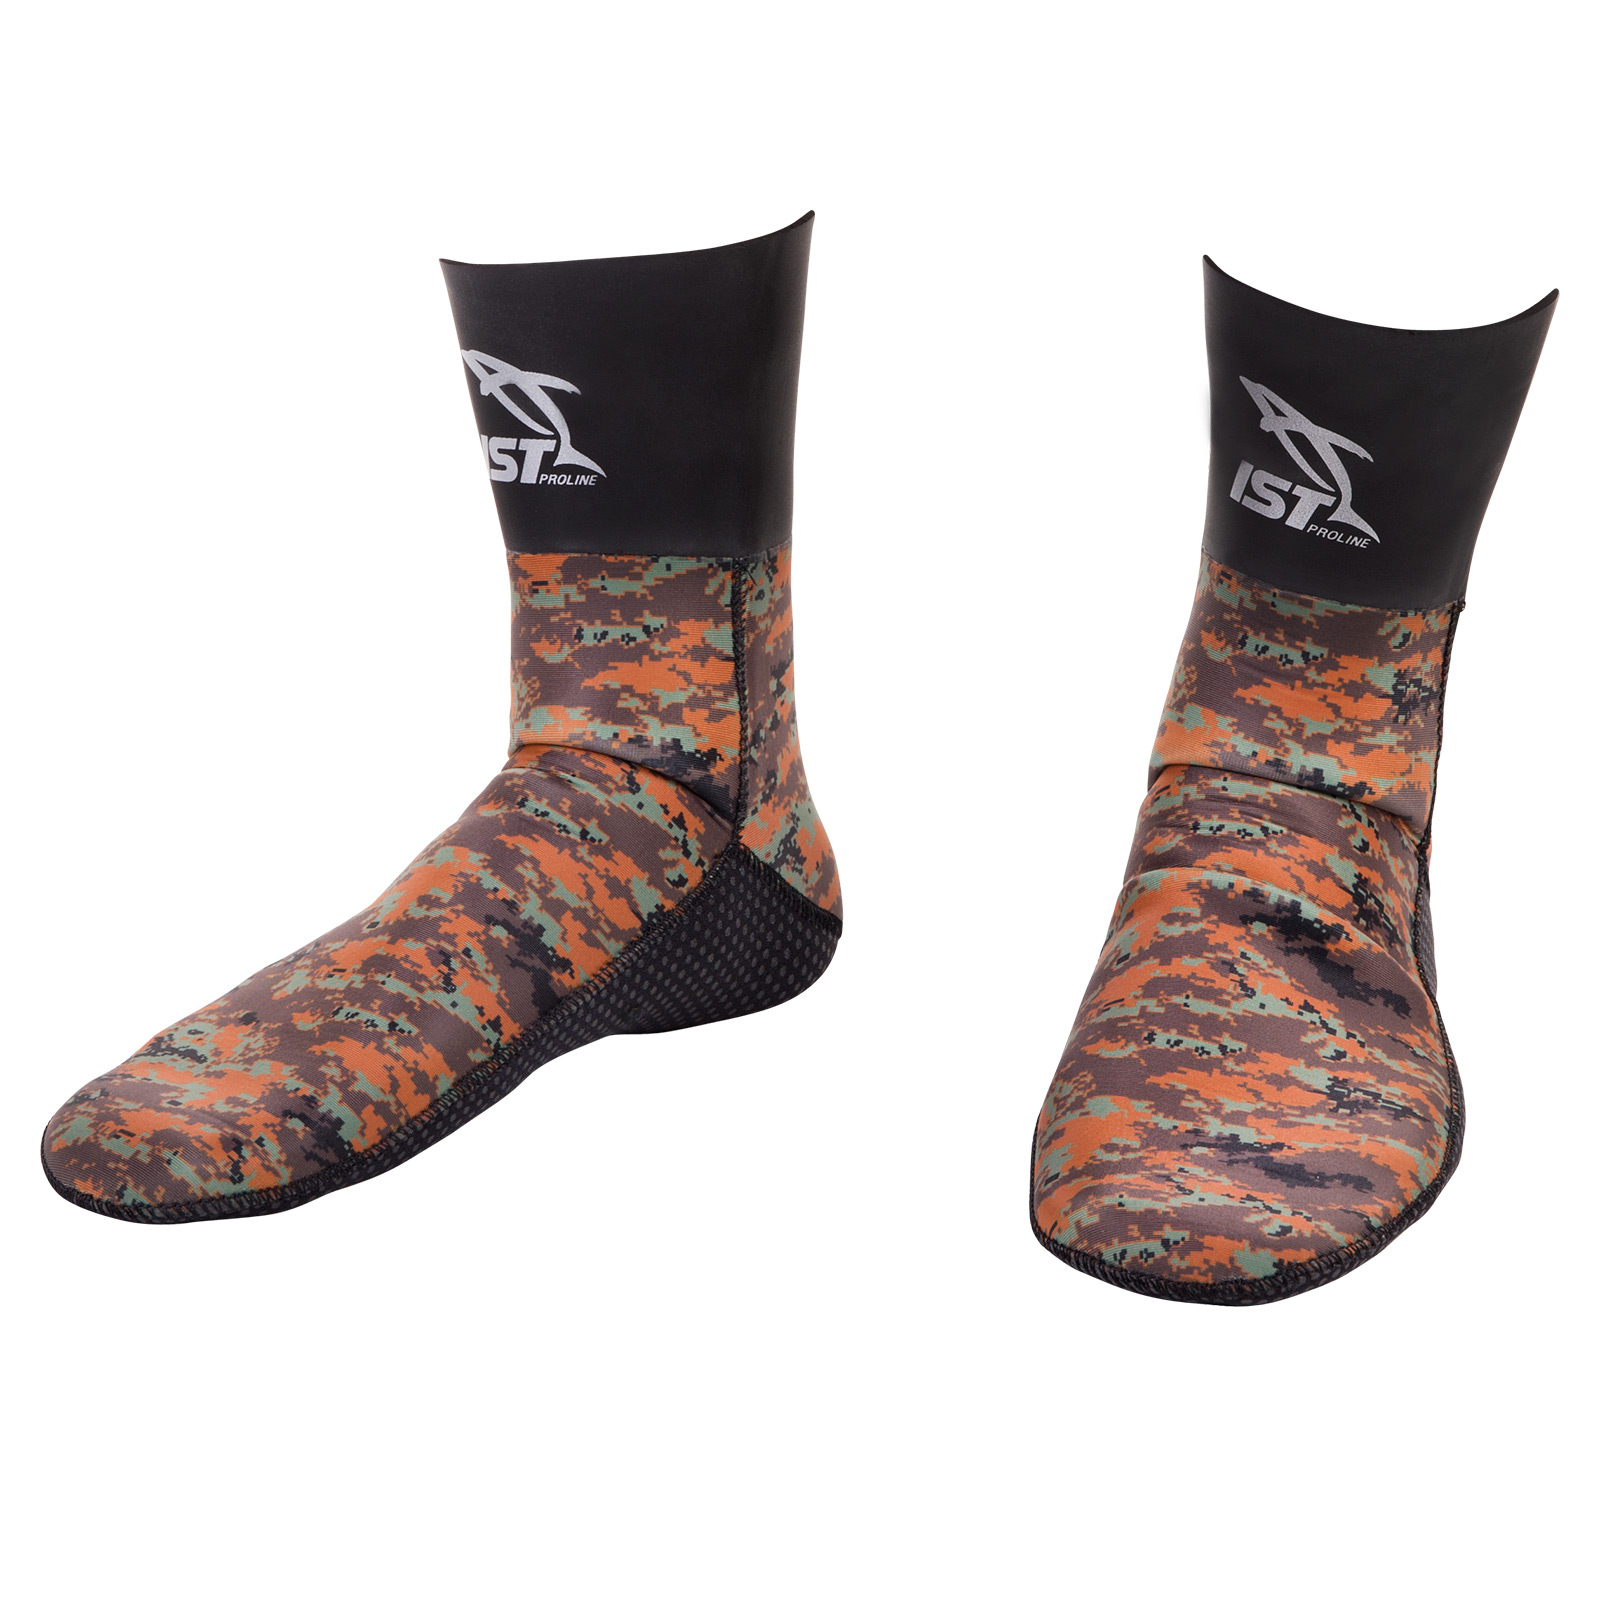 3mm Nylone Camouflage Socks